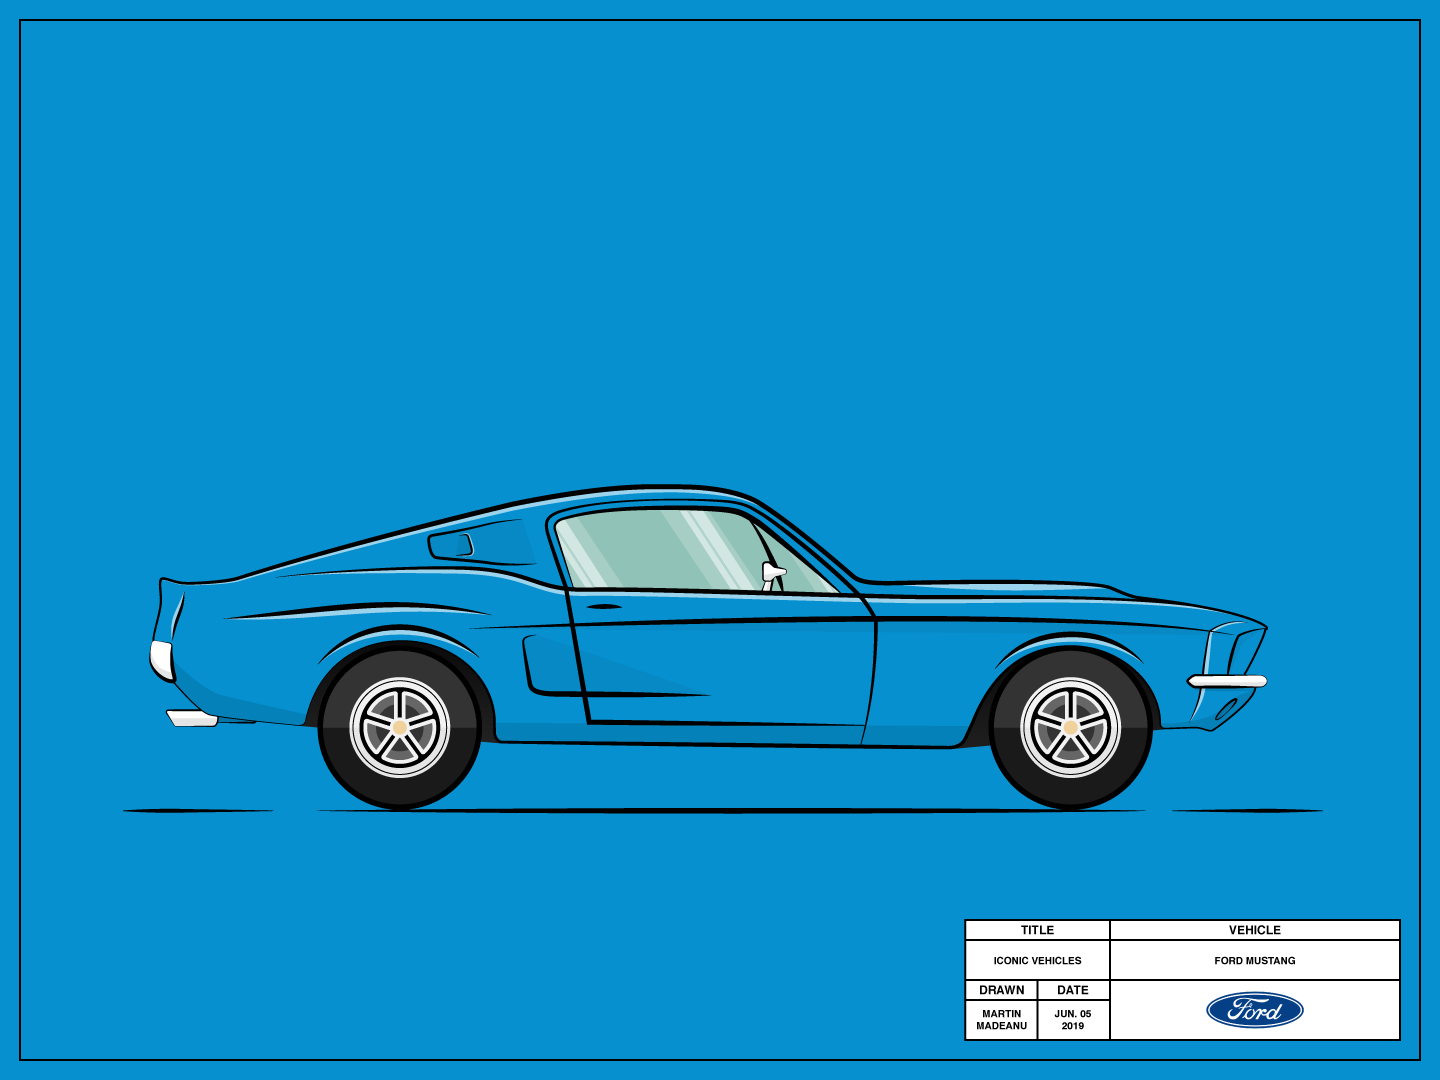 01-Ford_Mustang-03.png